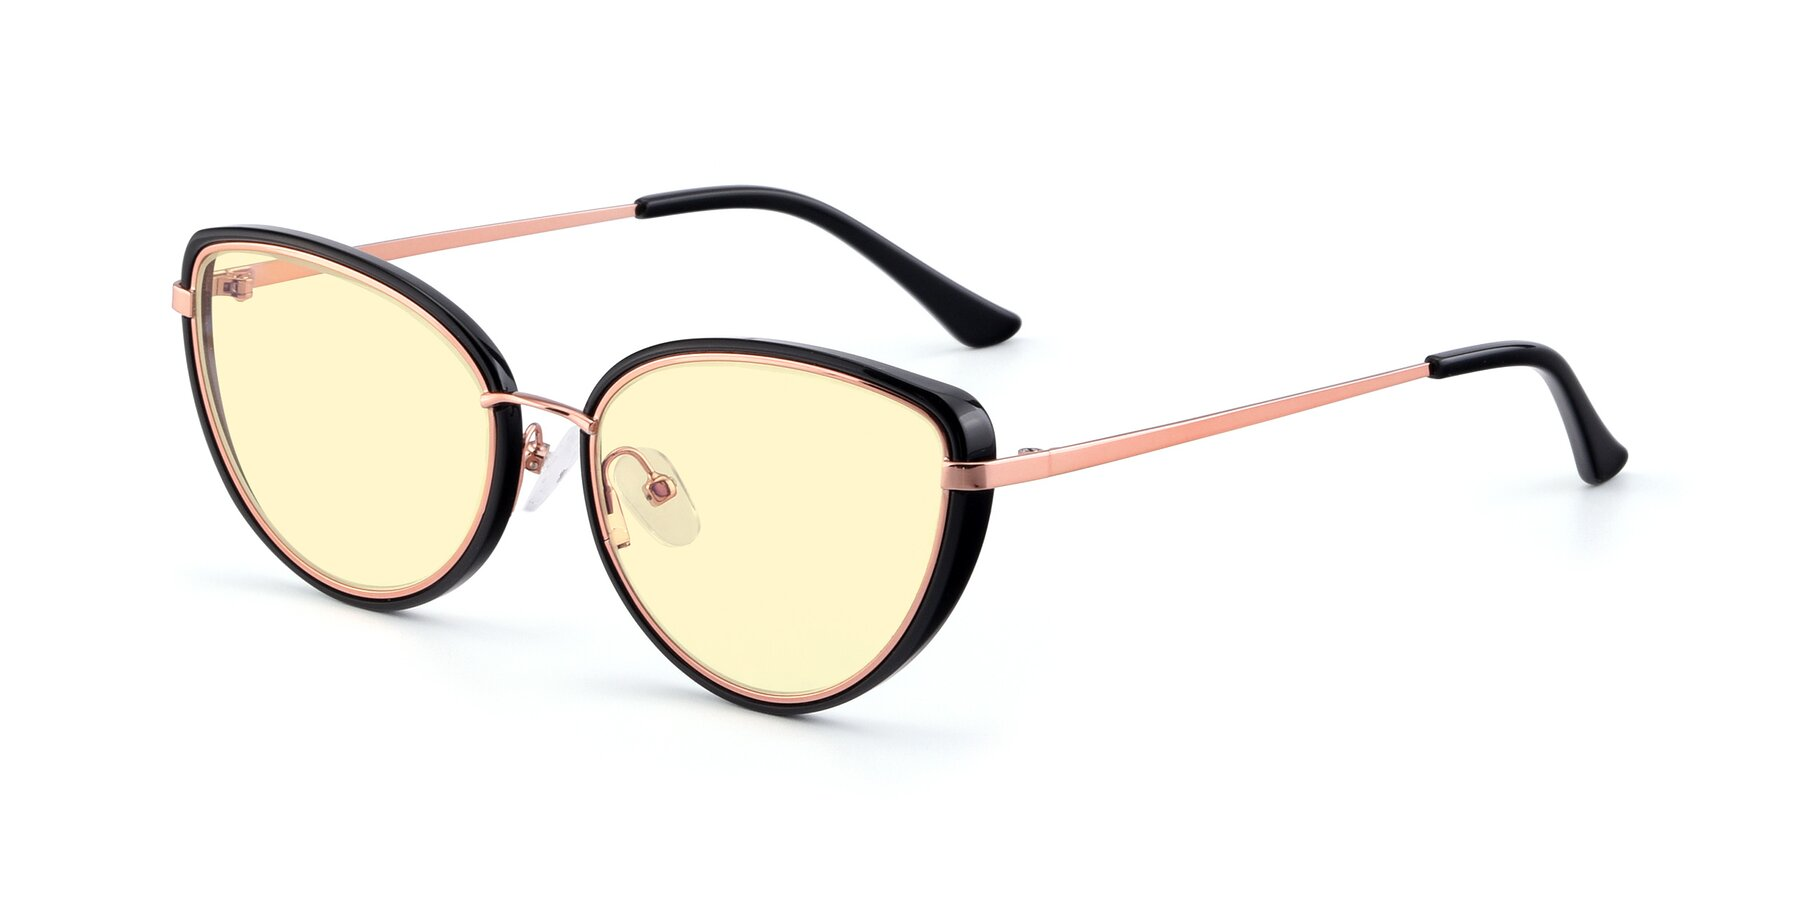 Angle of 17706 in Black-Rose Gold with Light Yellow Tinted Lenses